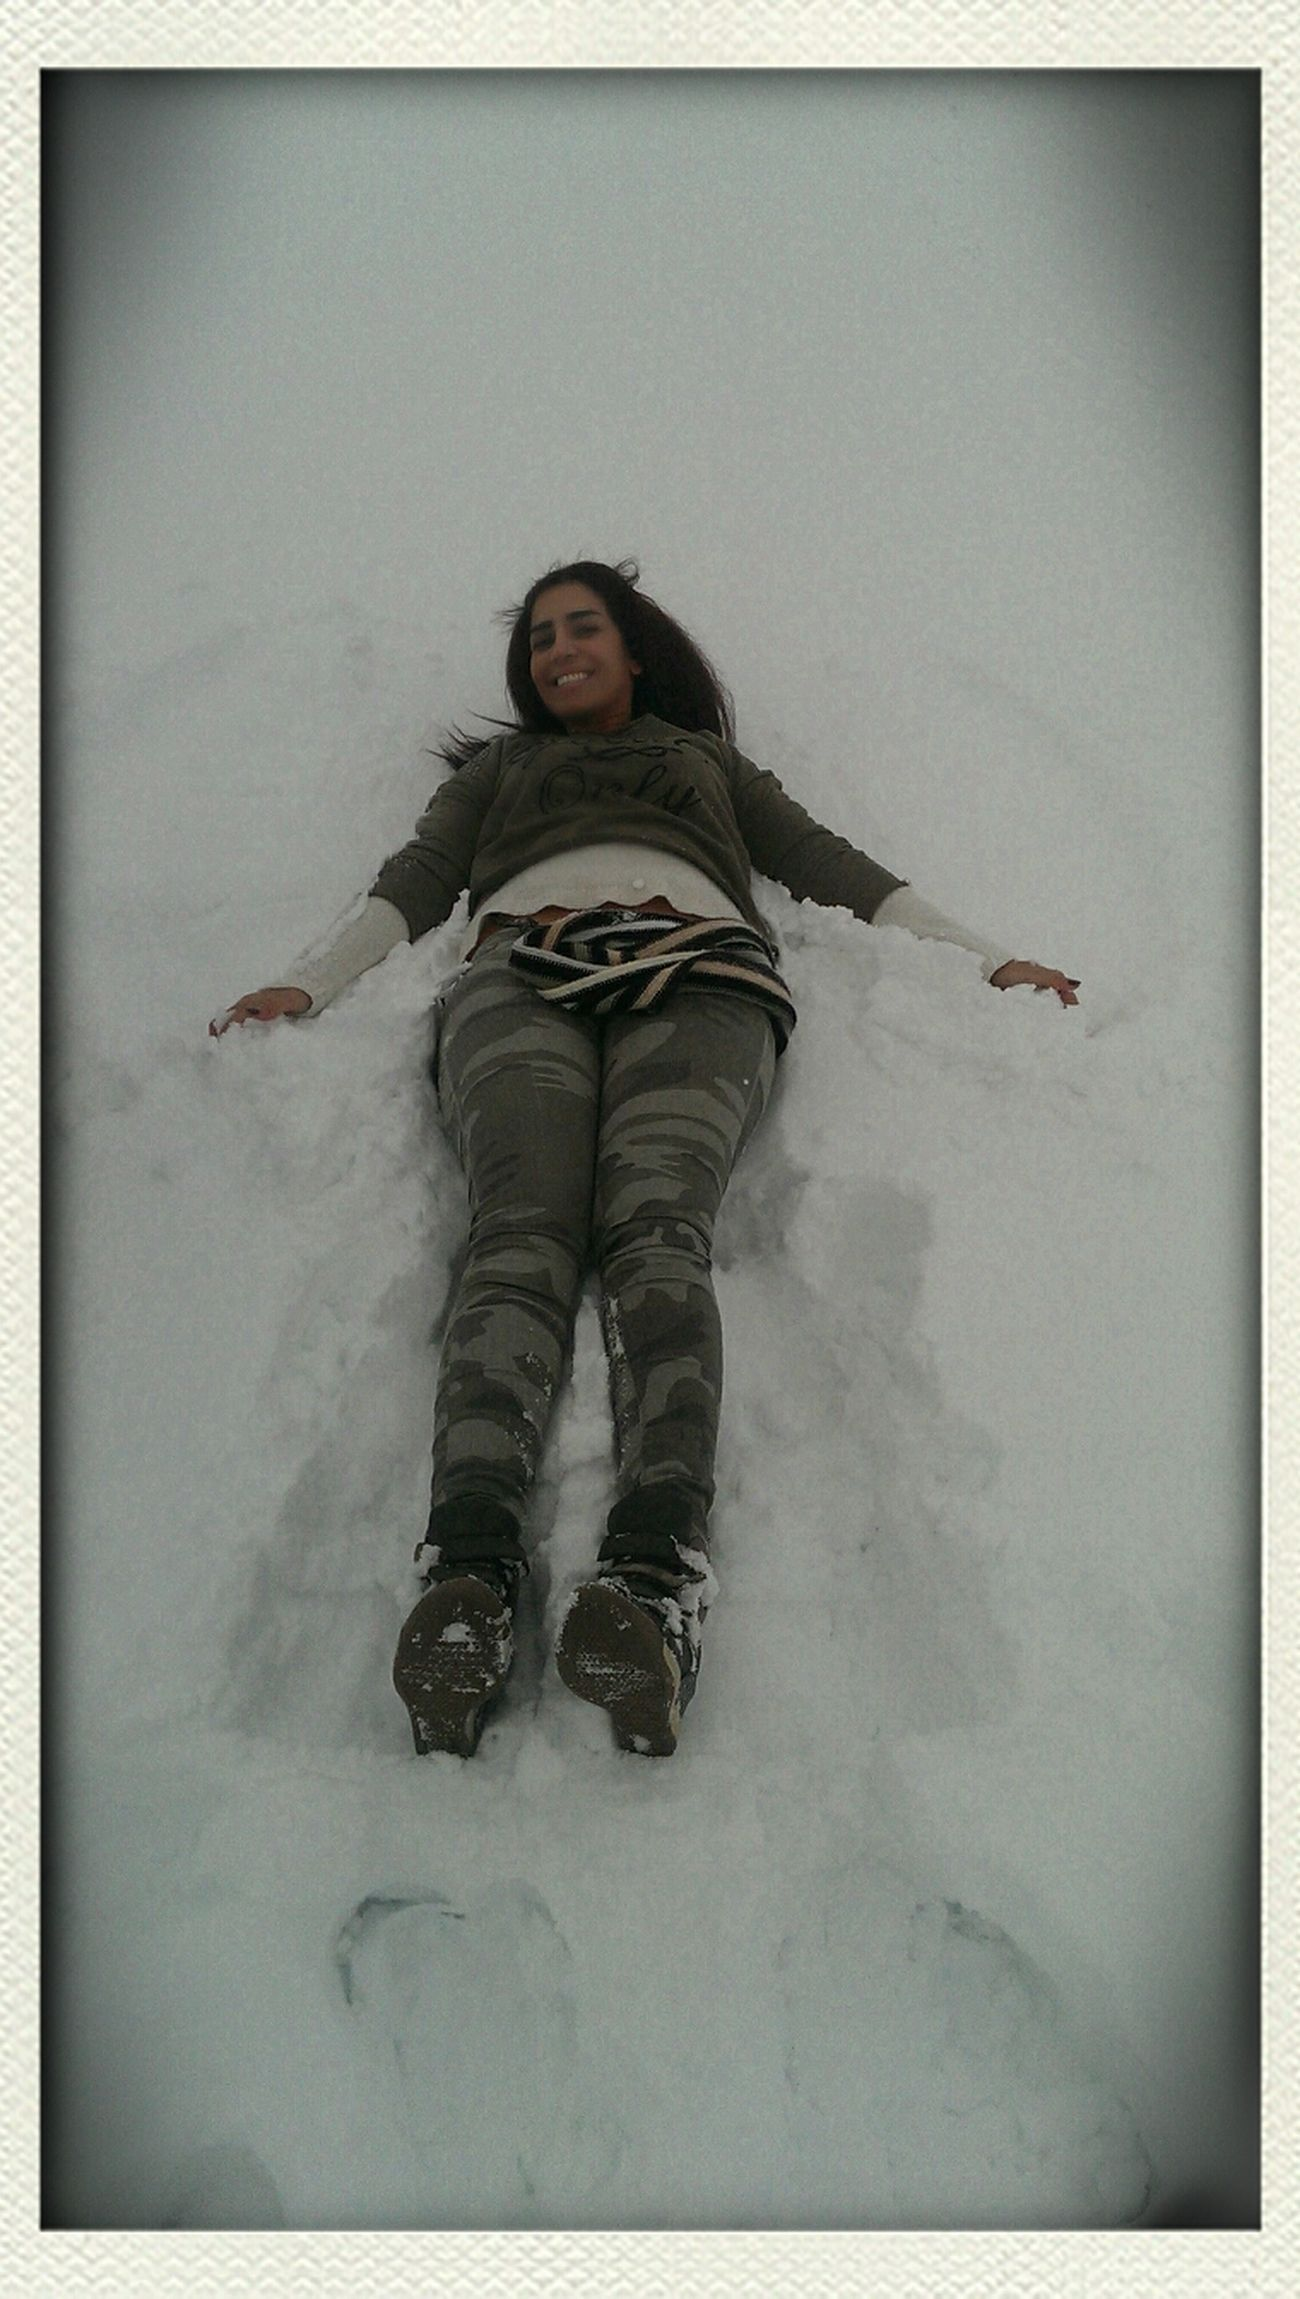 Snow ❄ Fun Laughs Making Snowangels